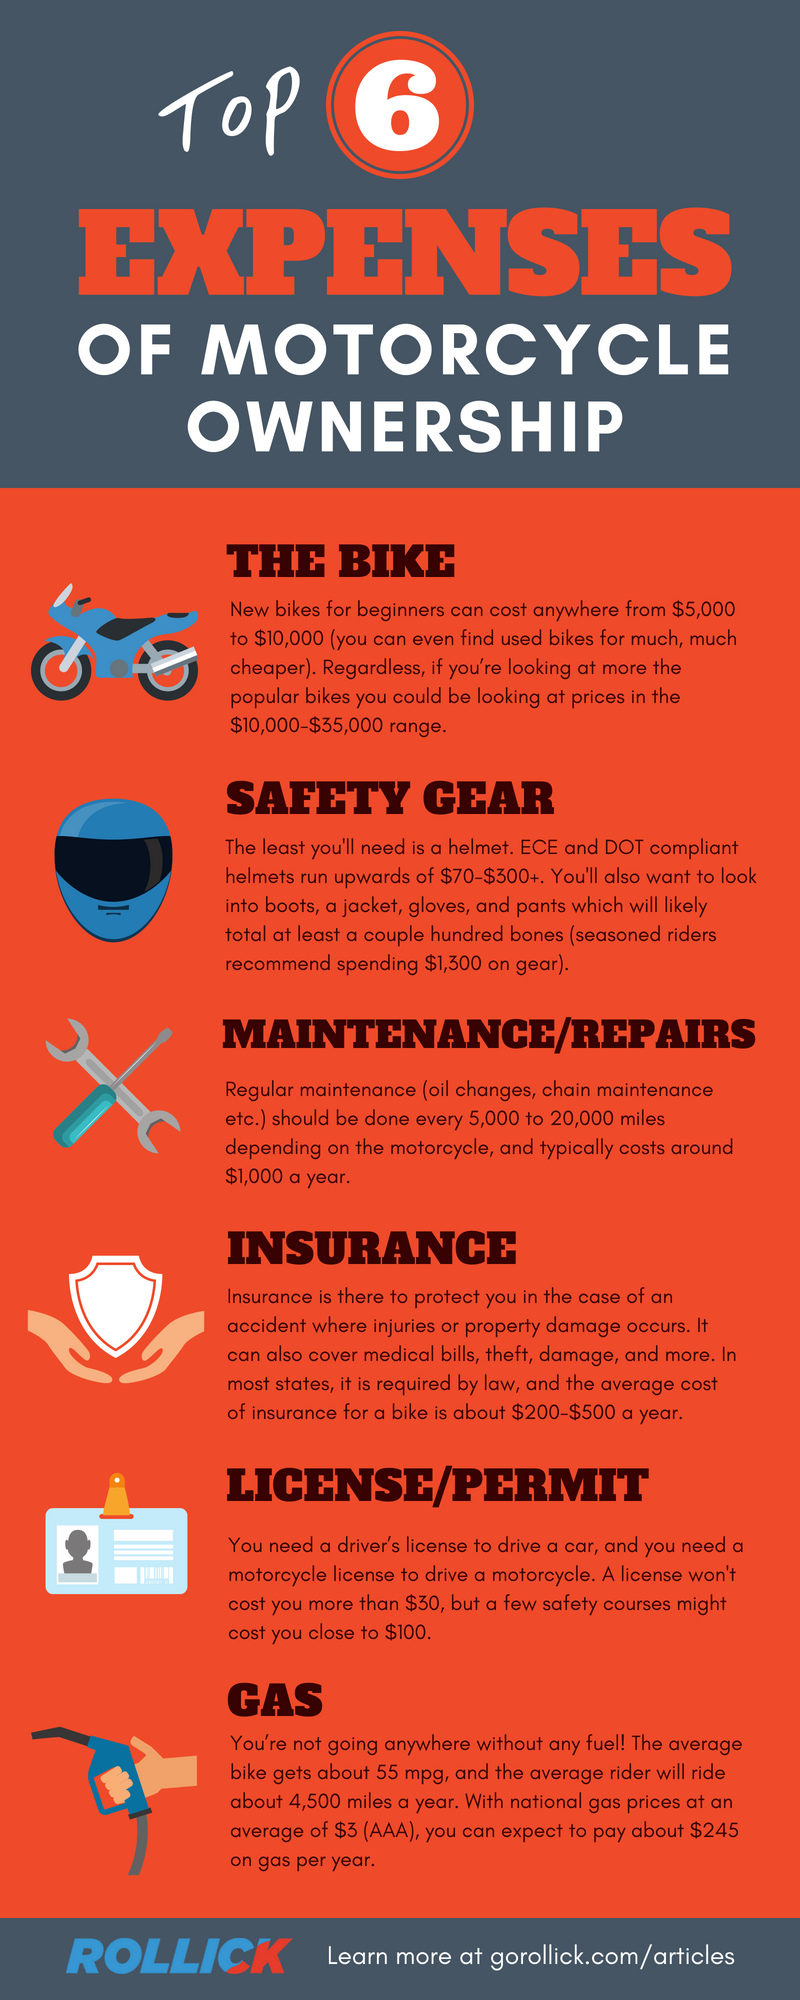 The True Cost of Motorcycle Ownership: Top 6 Expenses of Owning a Bike